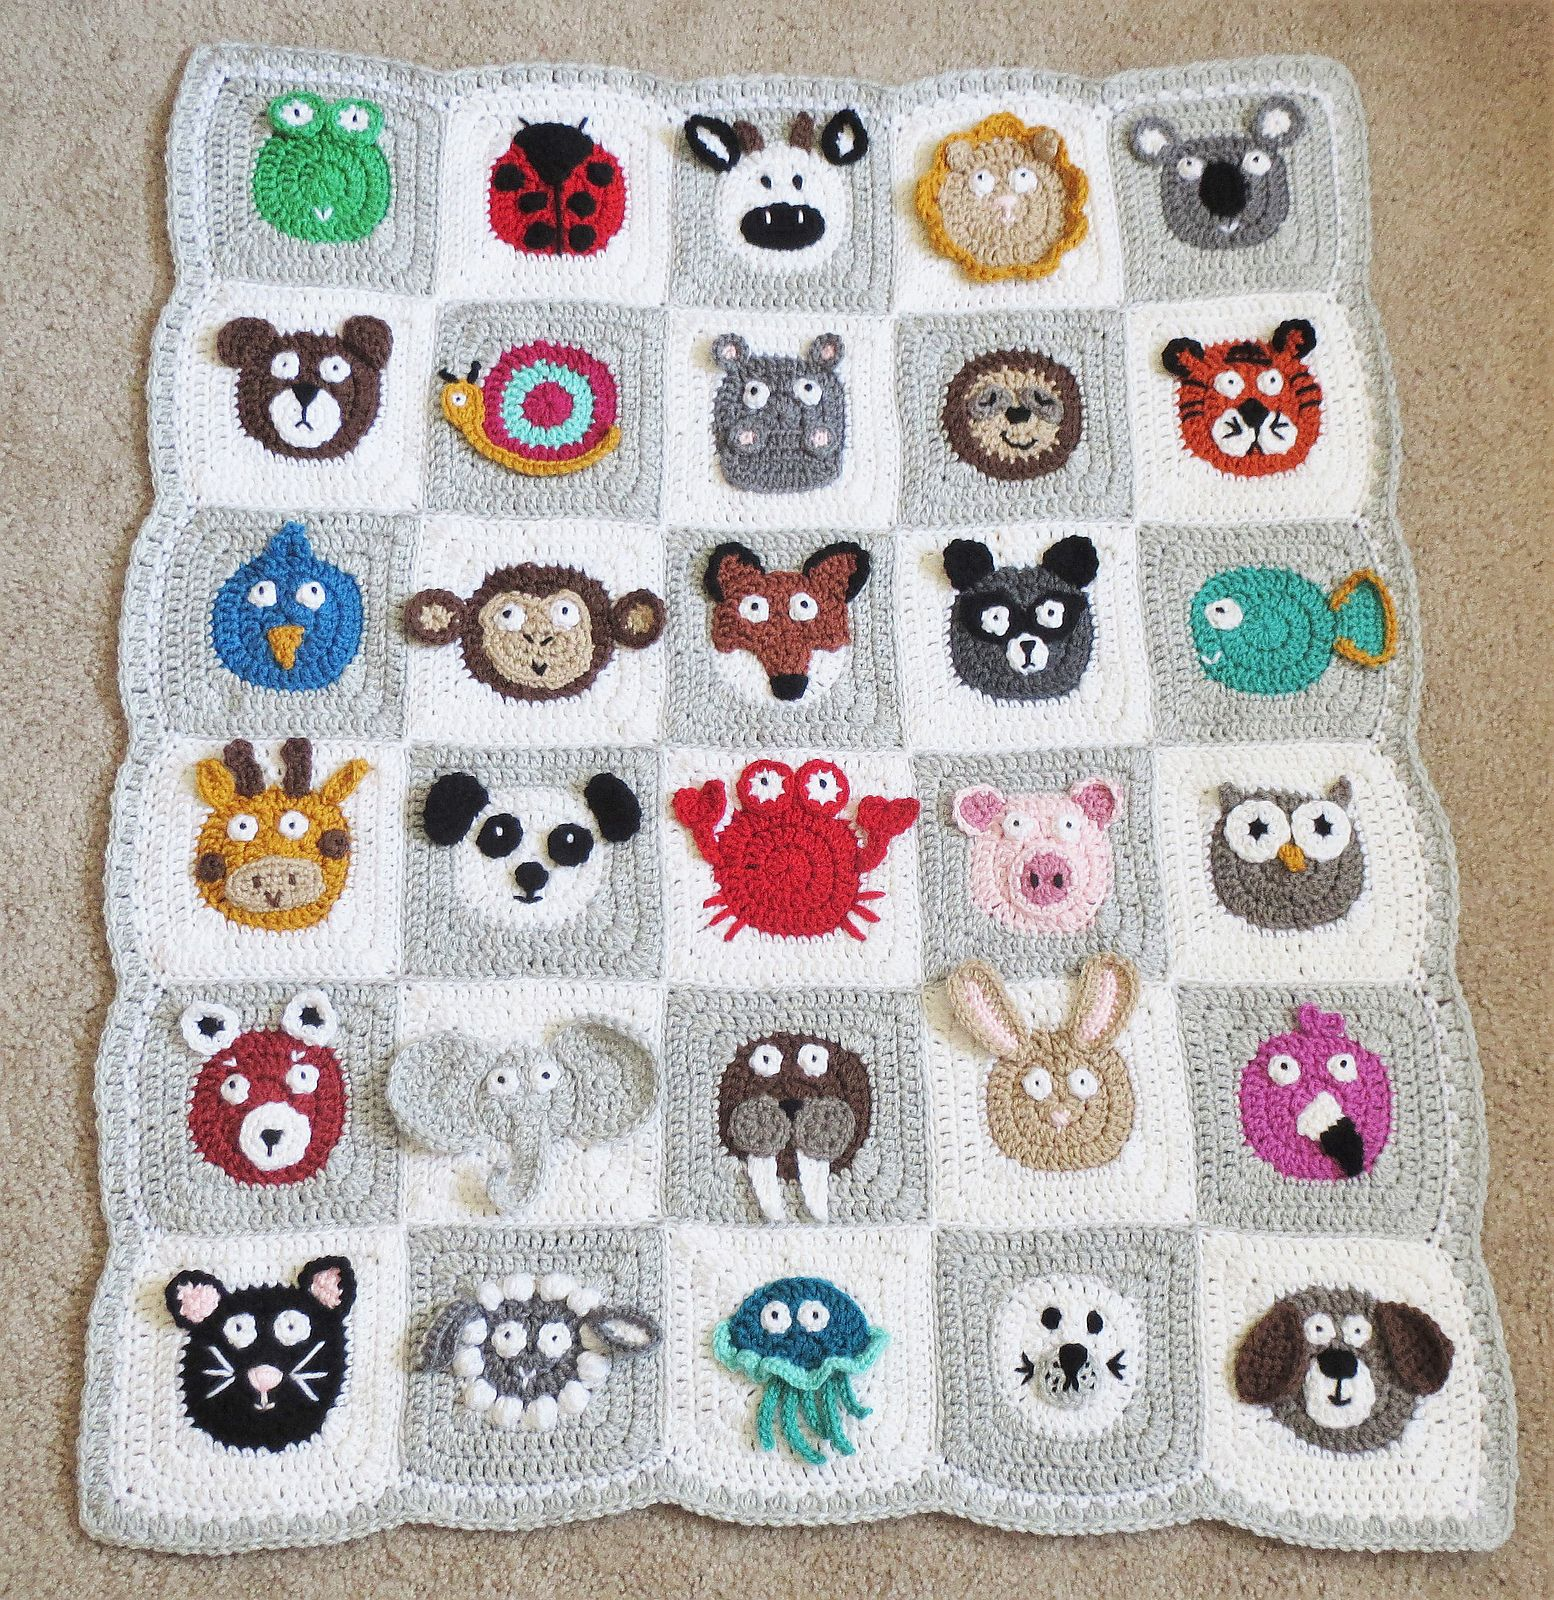 Zookeeper\'s Blanket pattern by Justine Walley | Manta, De animales y ...